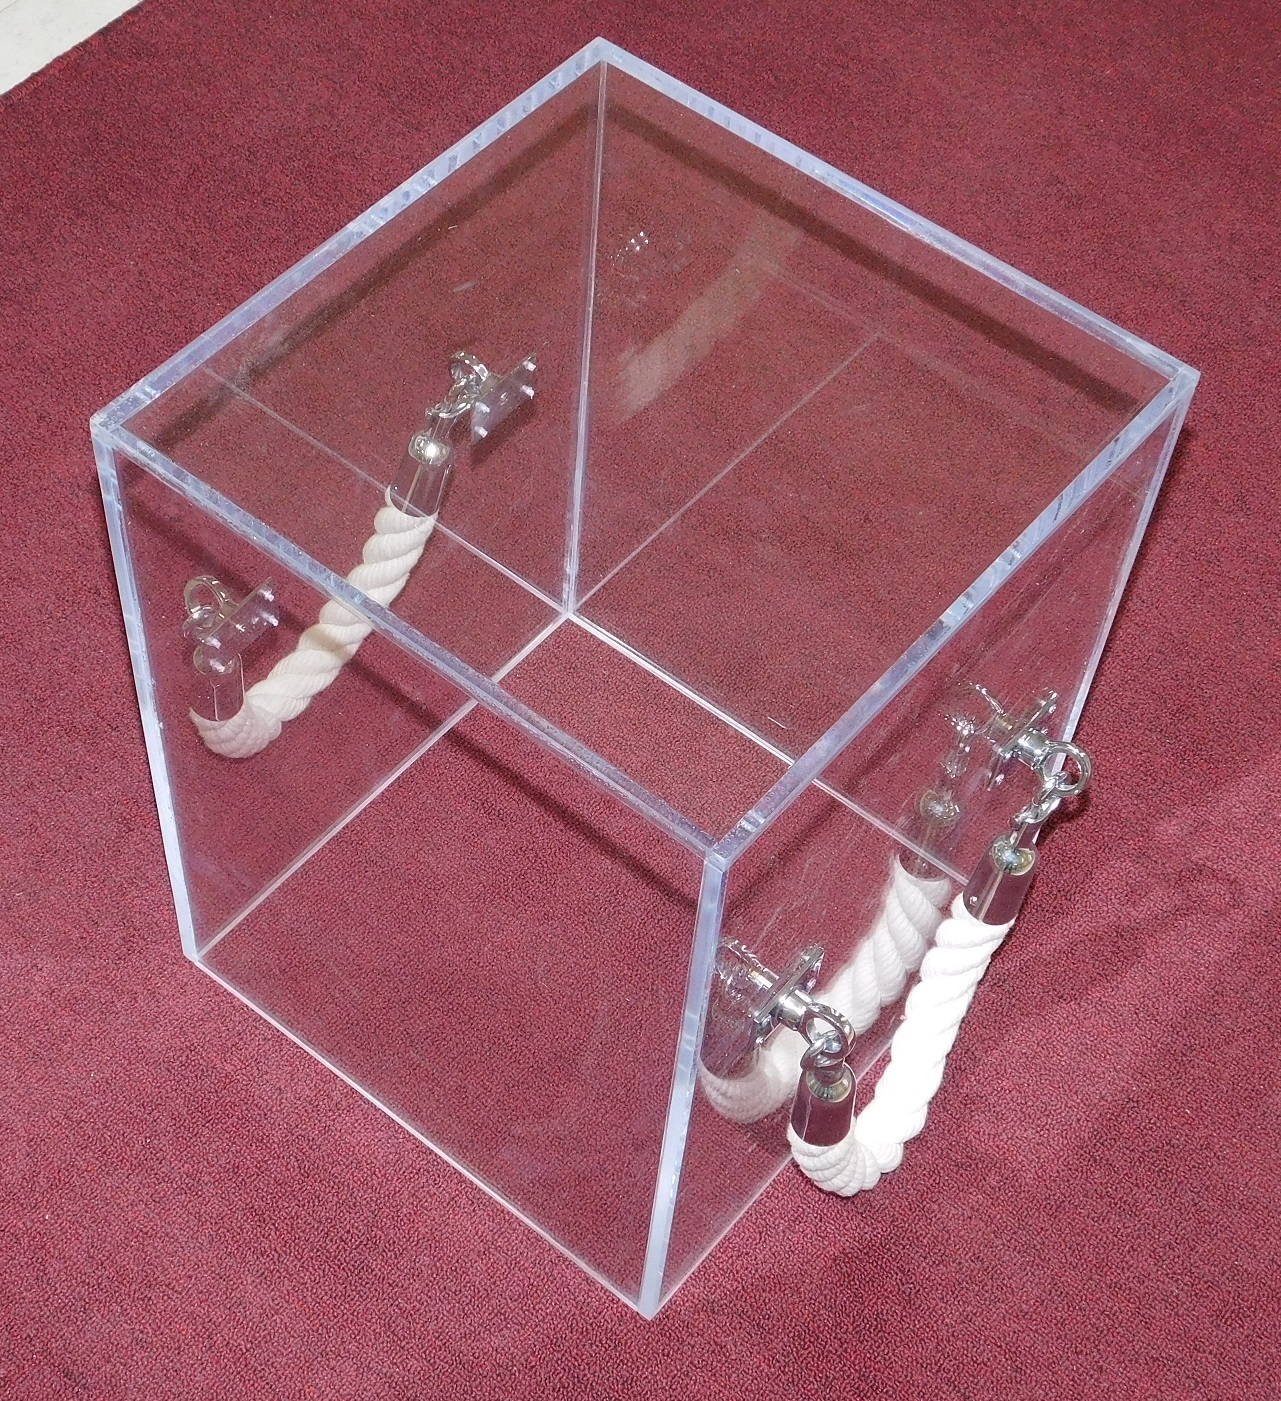 Cube_Acrylic_Lucite-rope handle-Table-white rope